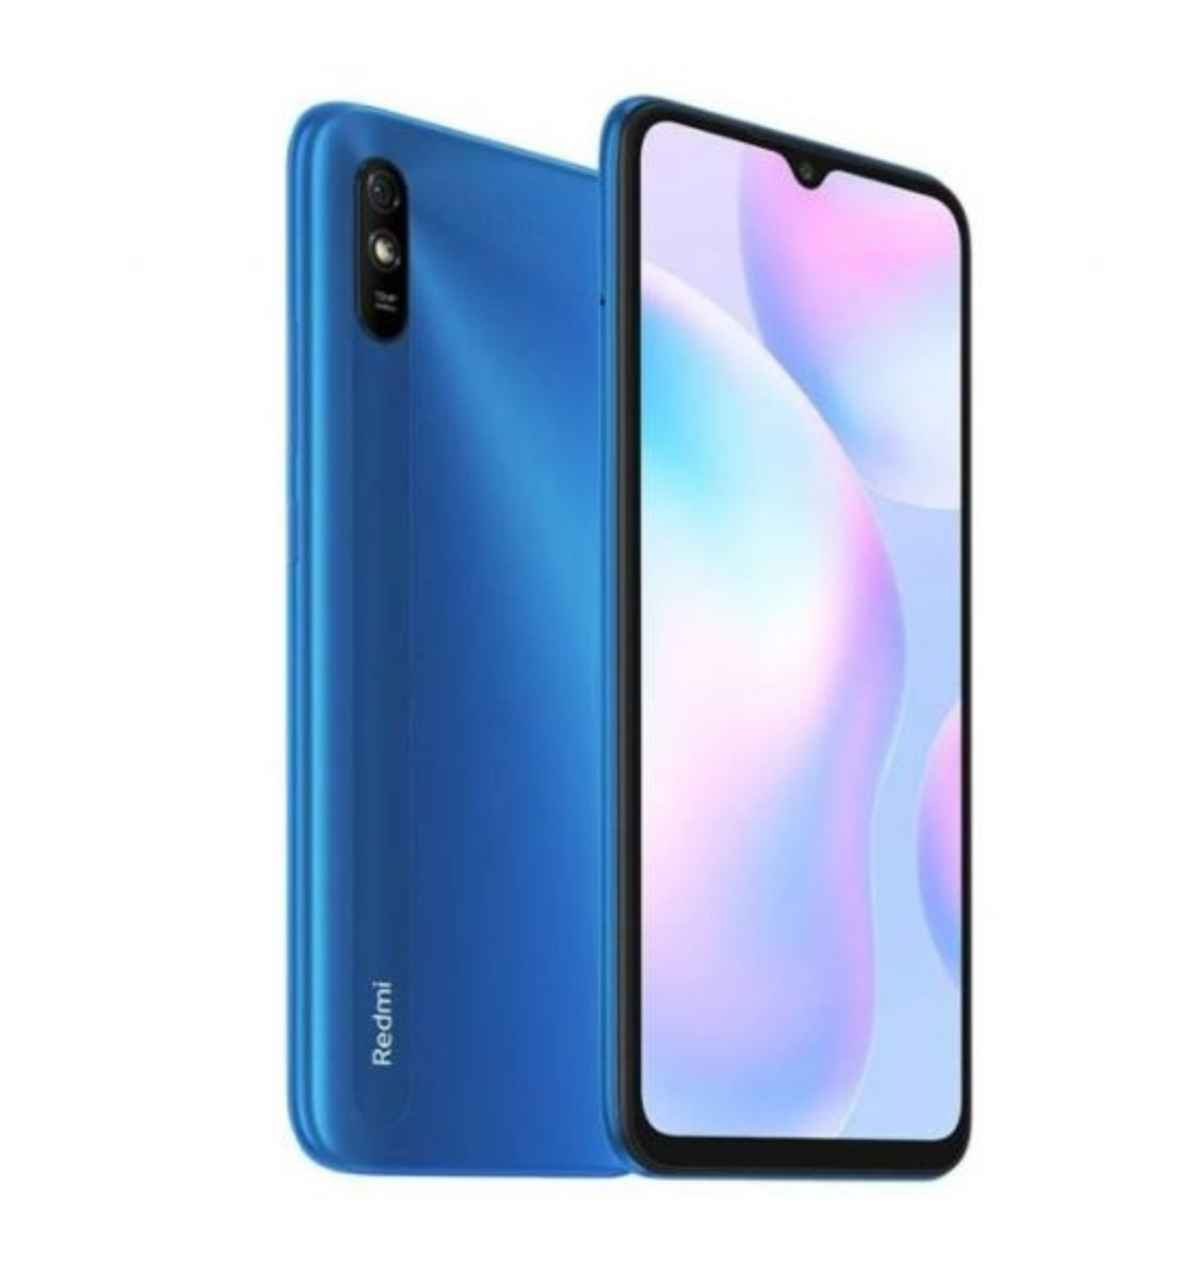 Xiaomi Redmi 9A price in Nigeria, how much is Redmi 9A in Nigeria, price of Xiaomi redmi 9A in Nigeria, Xiaomi Redmi 9A specs and price in Nigeria, Xiaomi Redmi 9A price, Xiaomi Redmi 9a specs, Redmi 9a specifications, Nigerian price of Xiaomi Redmi 9A, Xiaomi Redmi 9A in Nigeria